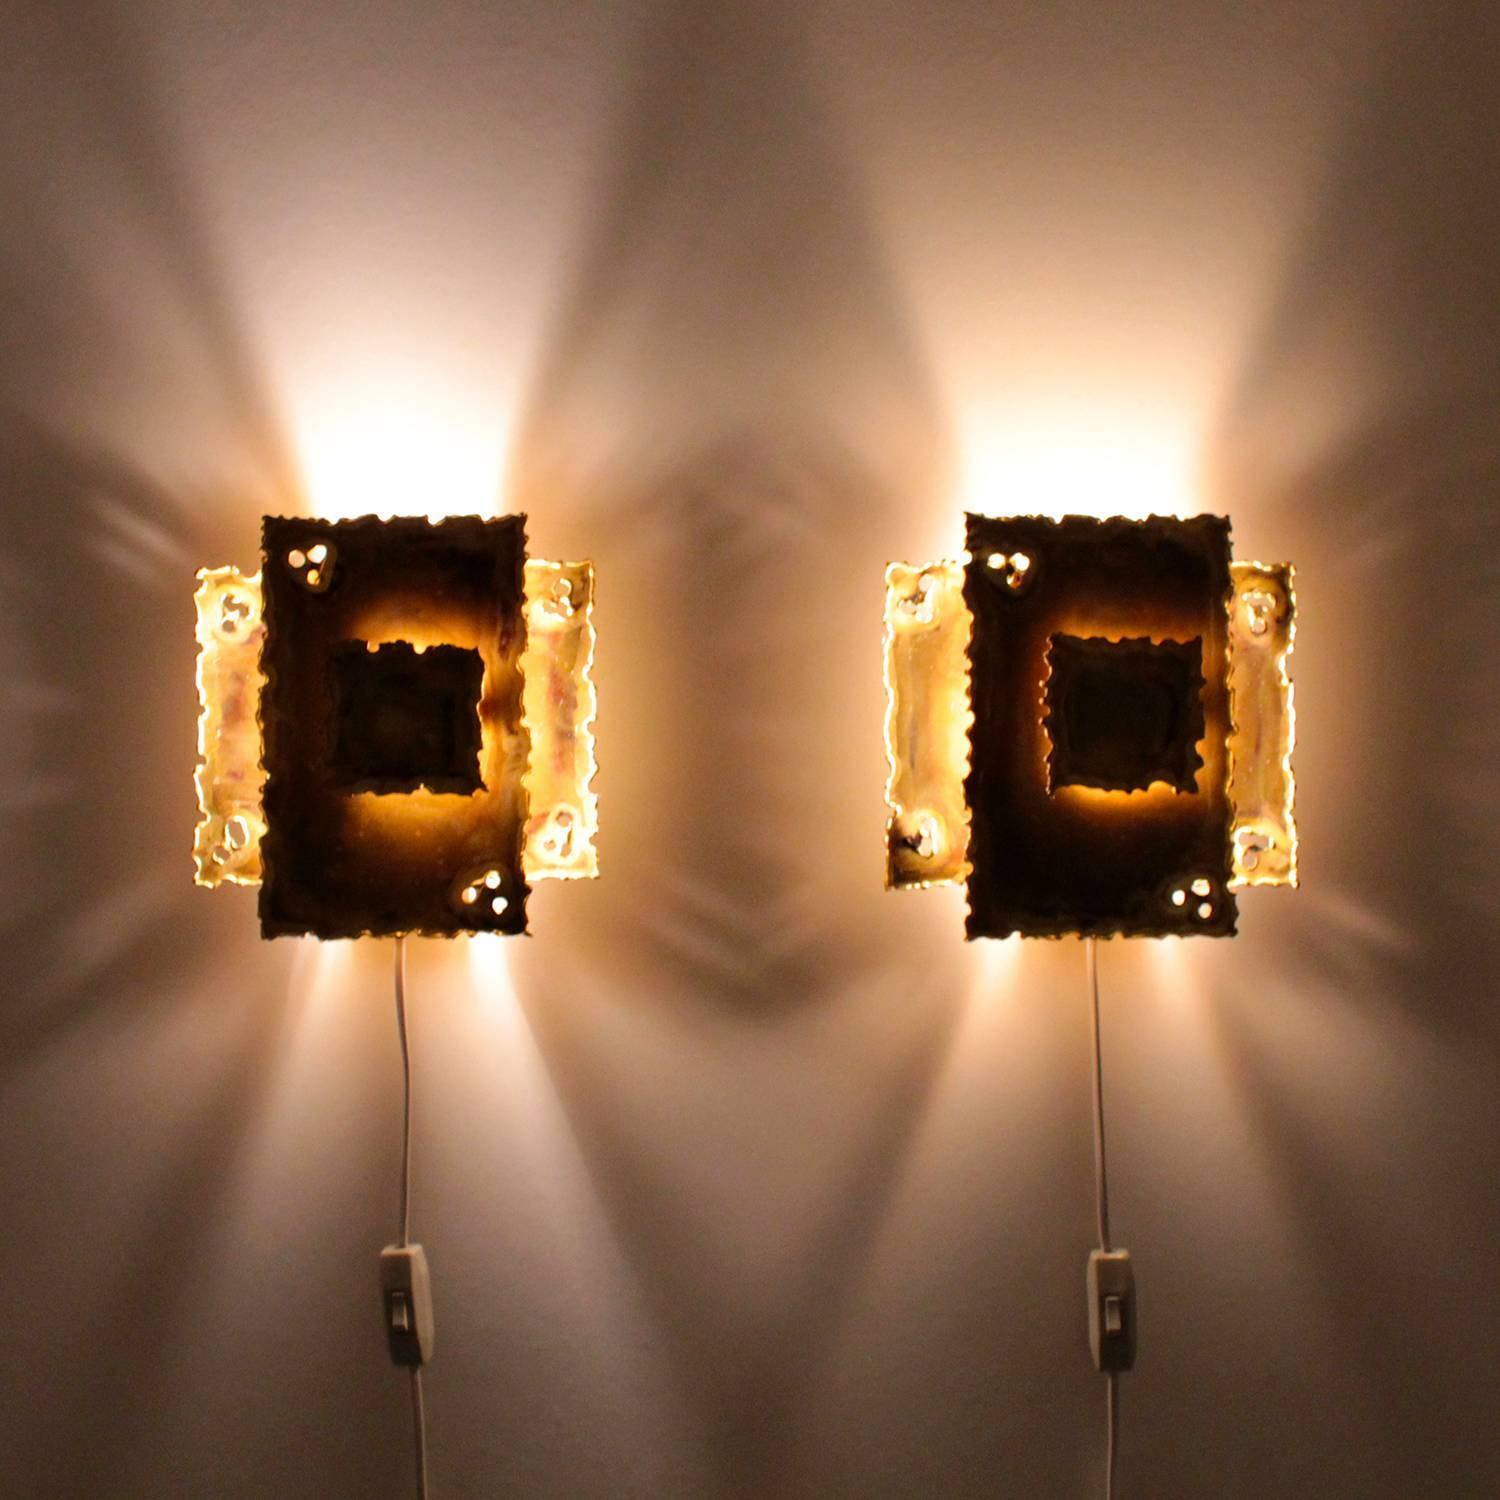 Eclectic Wall Sconces Brass Wall Lamps Pair By Holm Sorensen 1960s Danish